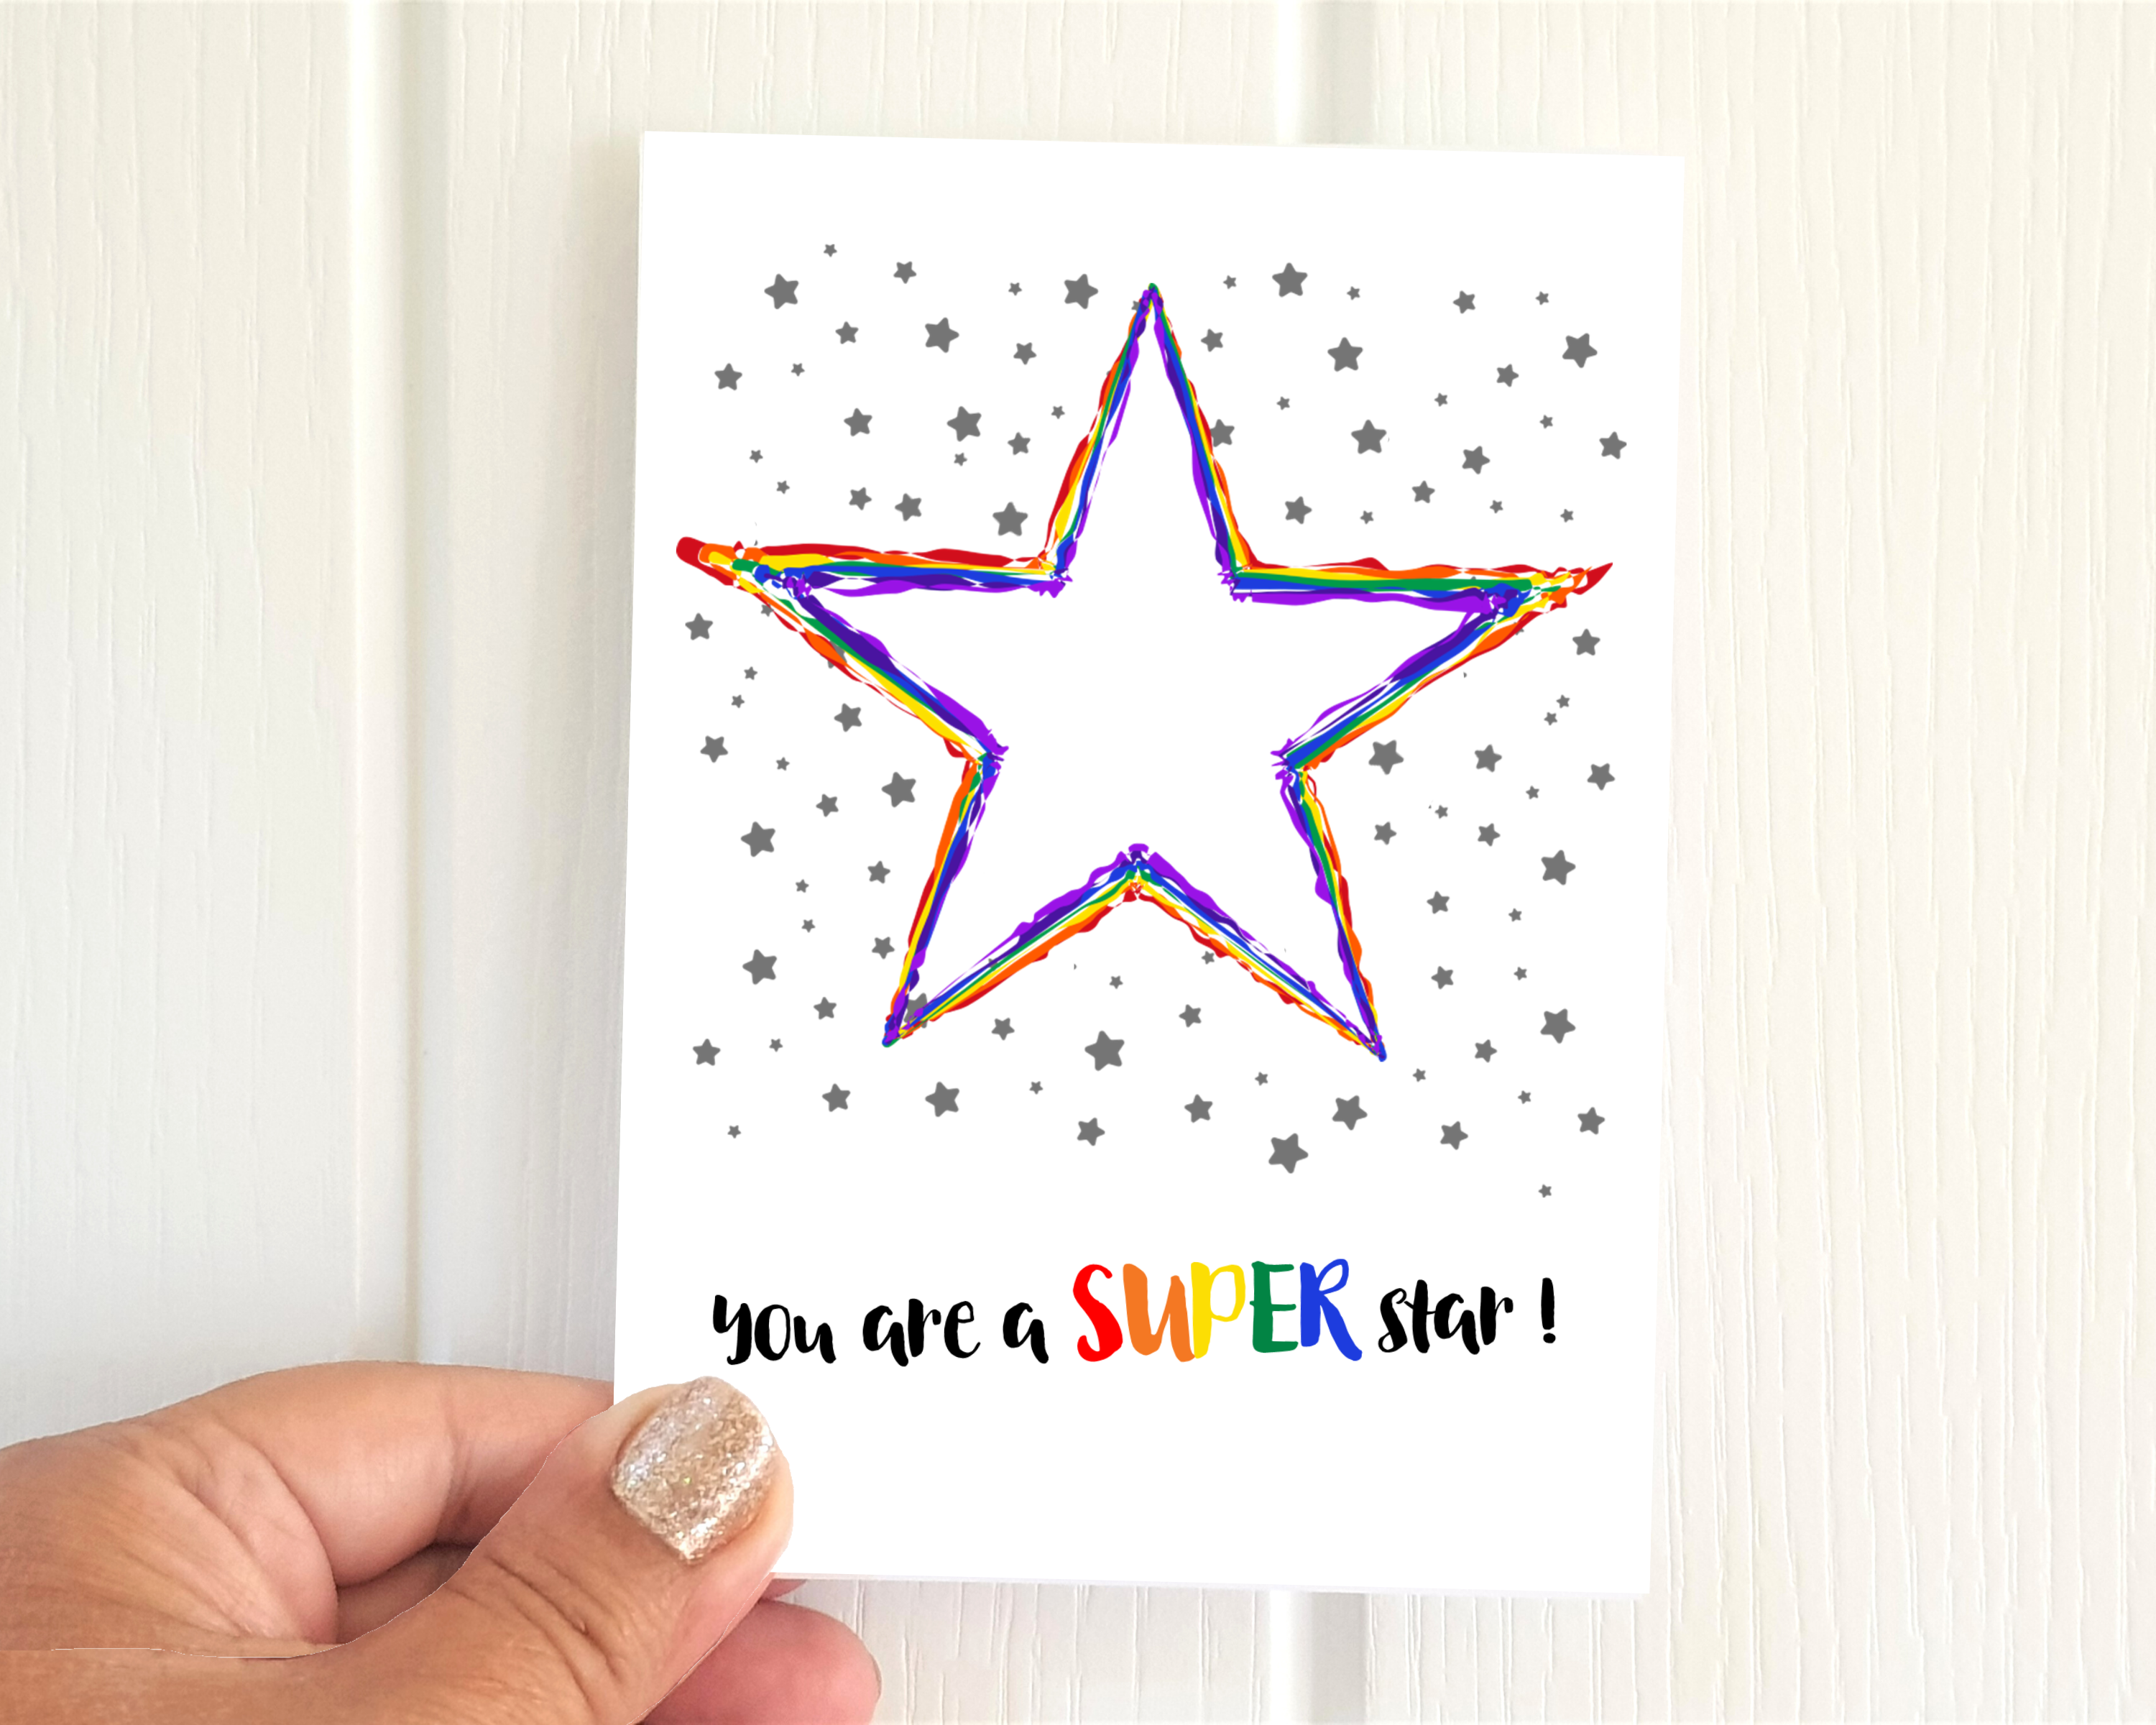 Poppleberry A6 folded greetings card, with a rainbow-coloured star illustration, on white cardstock, size compared with hand.